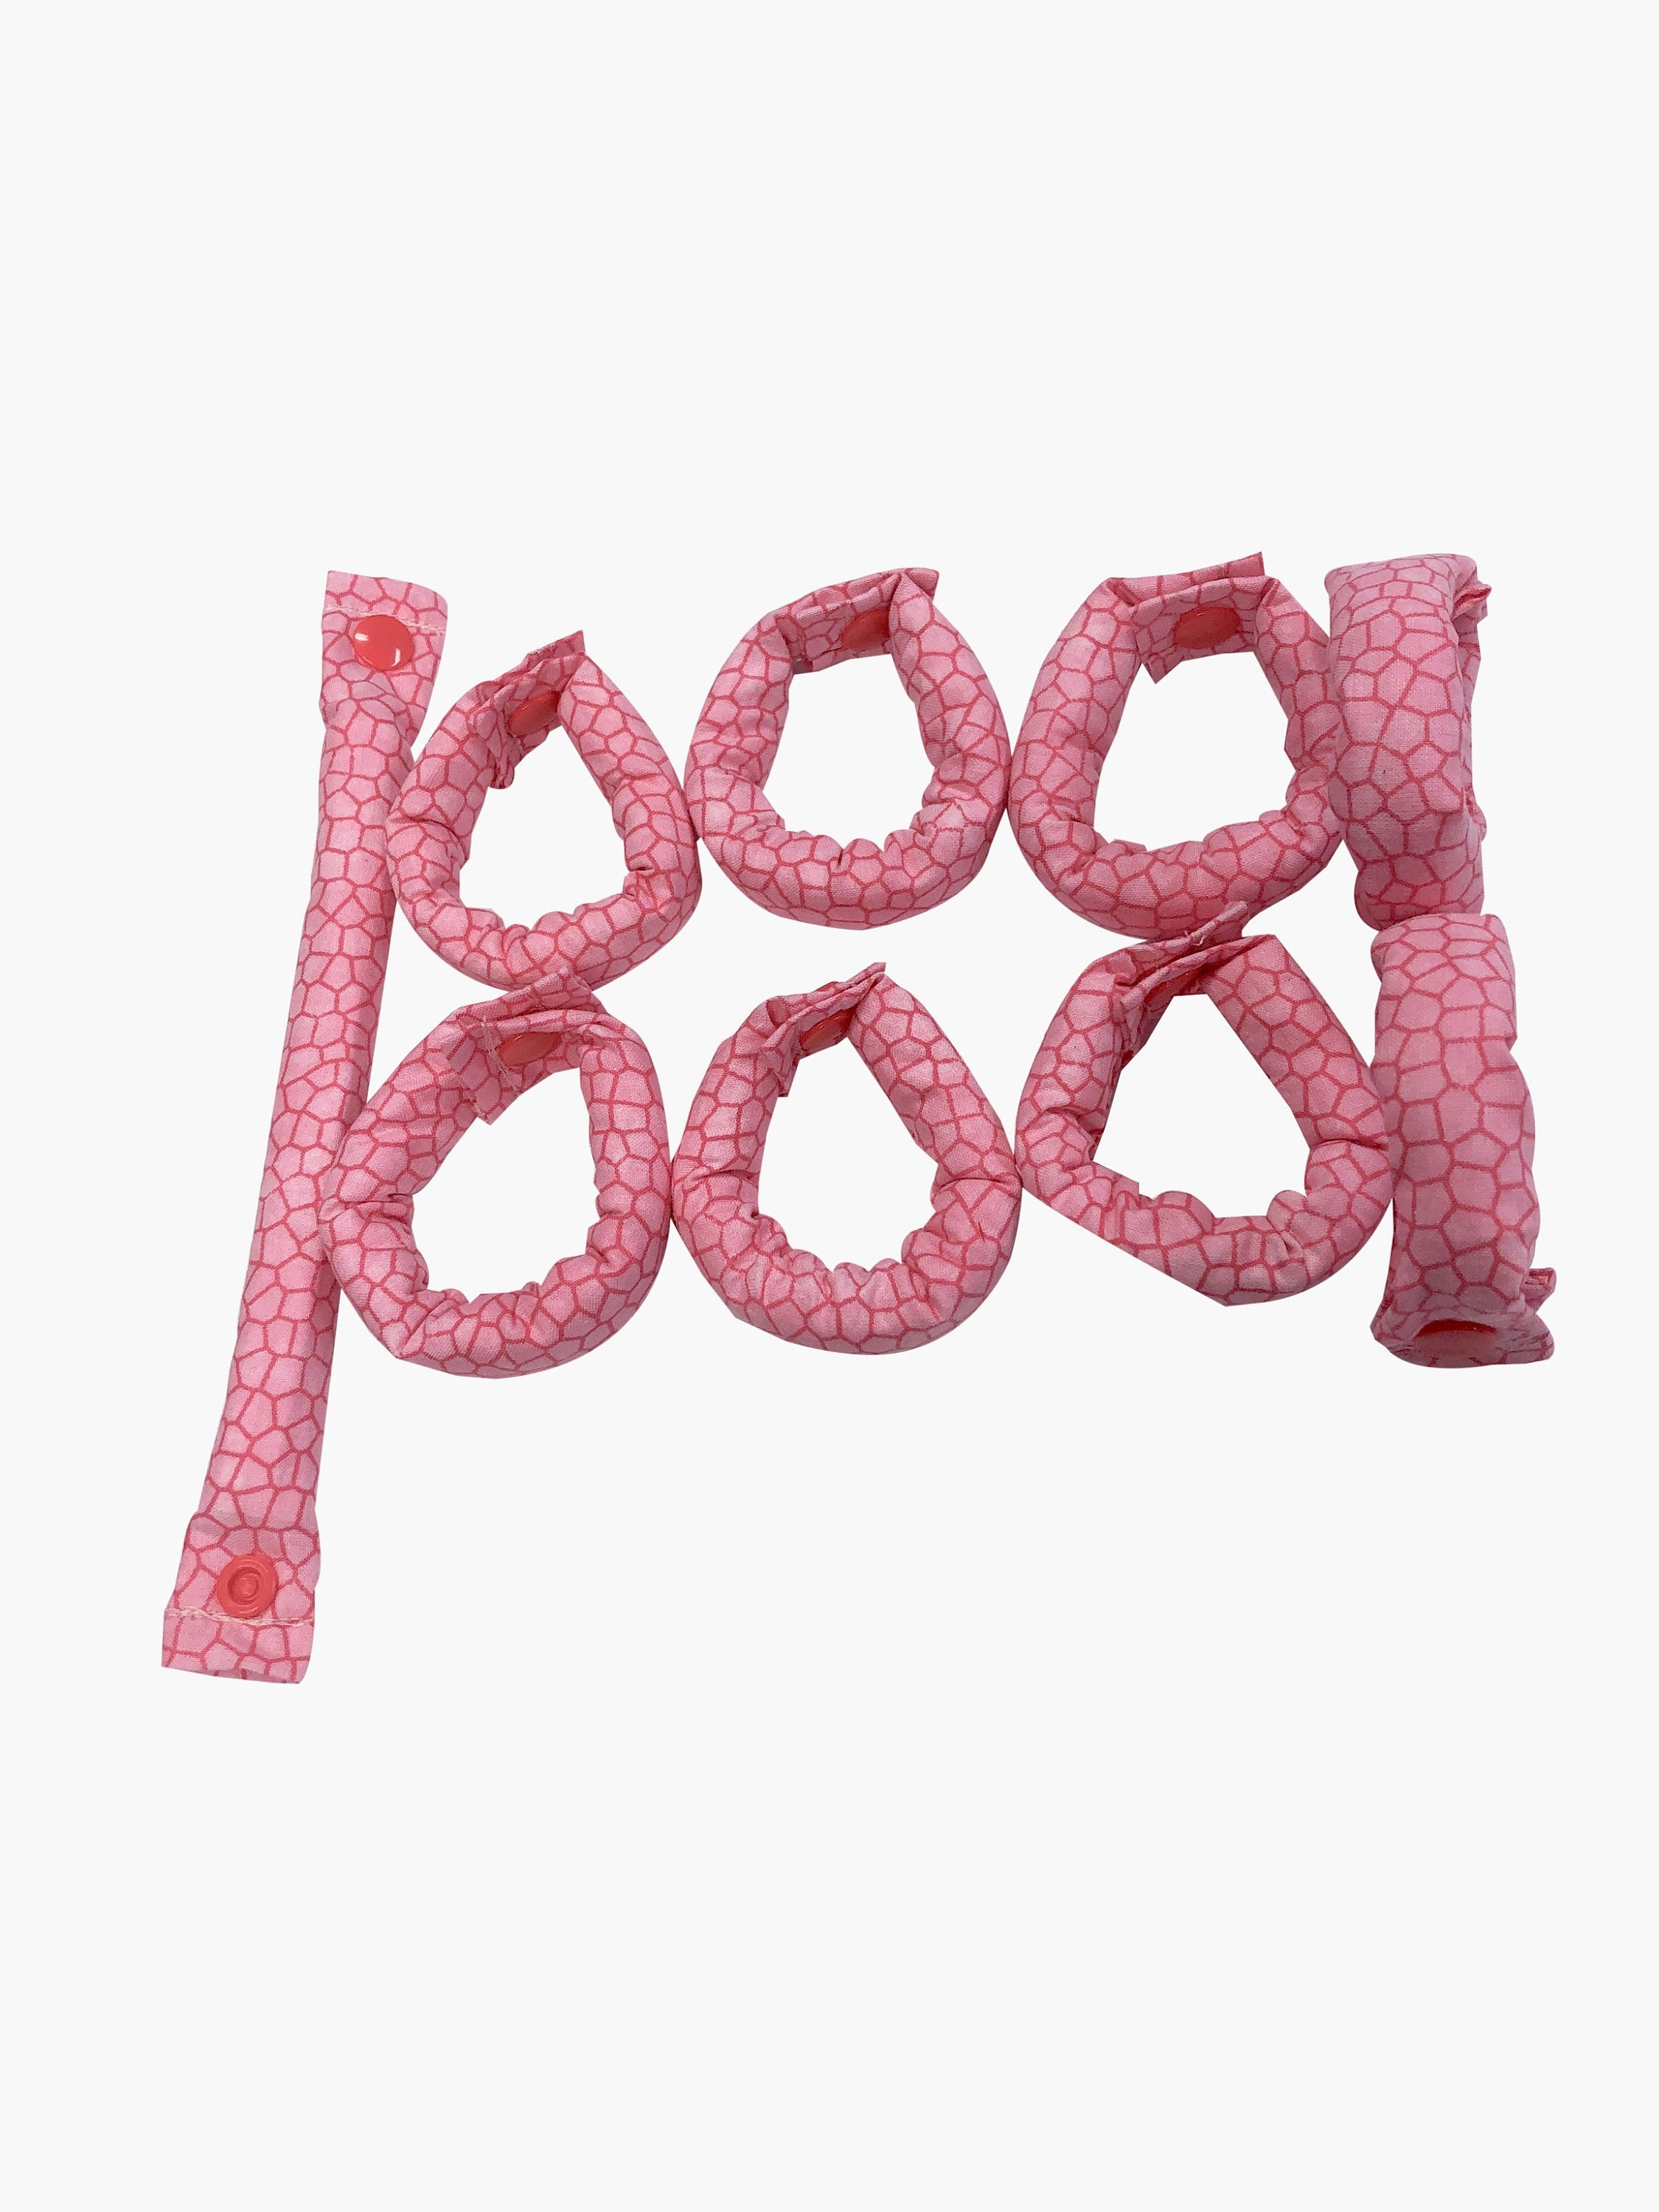 Pink cobblestone/alligator skin Print 3/4 inch fabric hair rollers/Hair Curlers/Hair Accessories - My Easy Curls